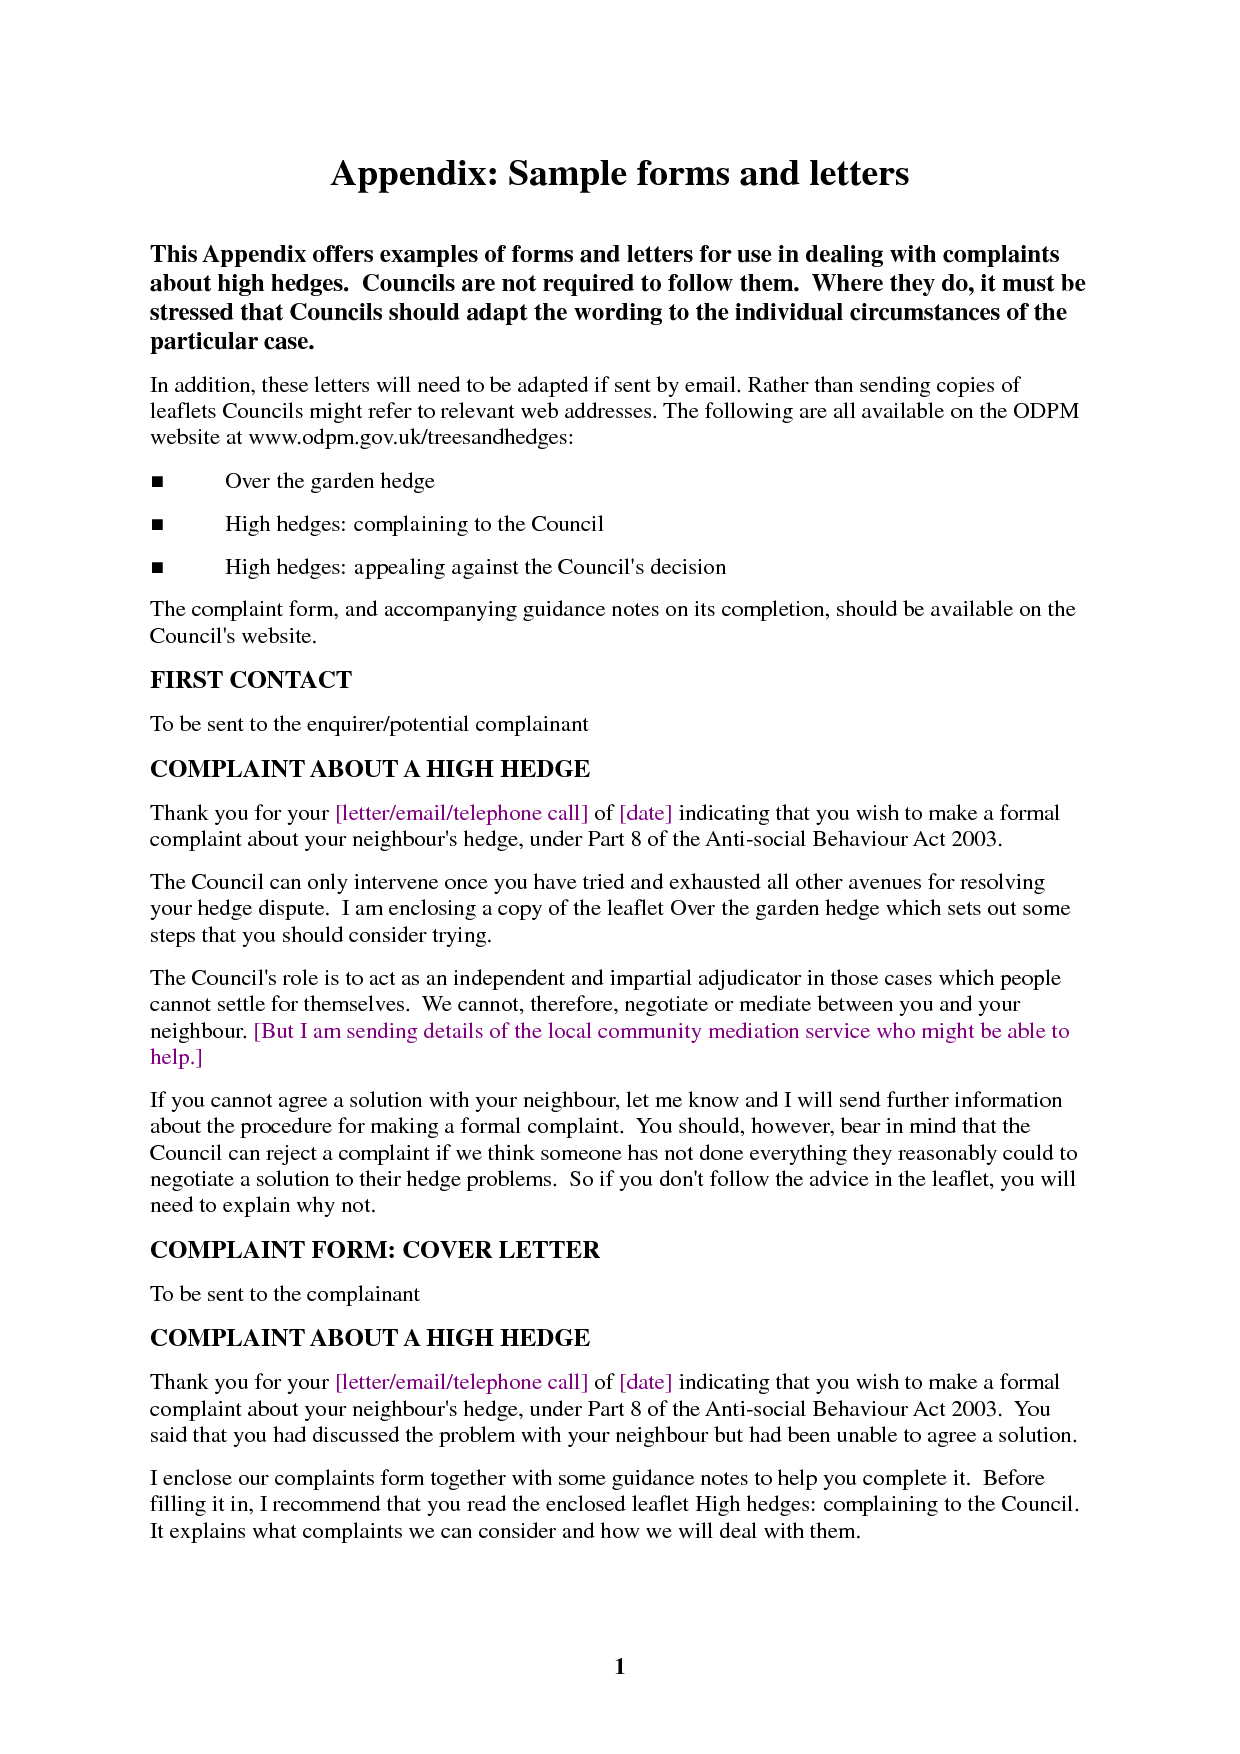 Housing Reference Letter Template - Sample Reference Letter From Landlord to Tenant Image Collections